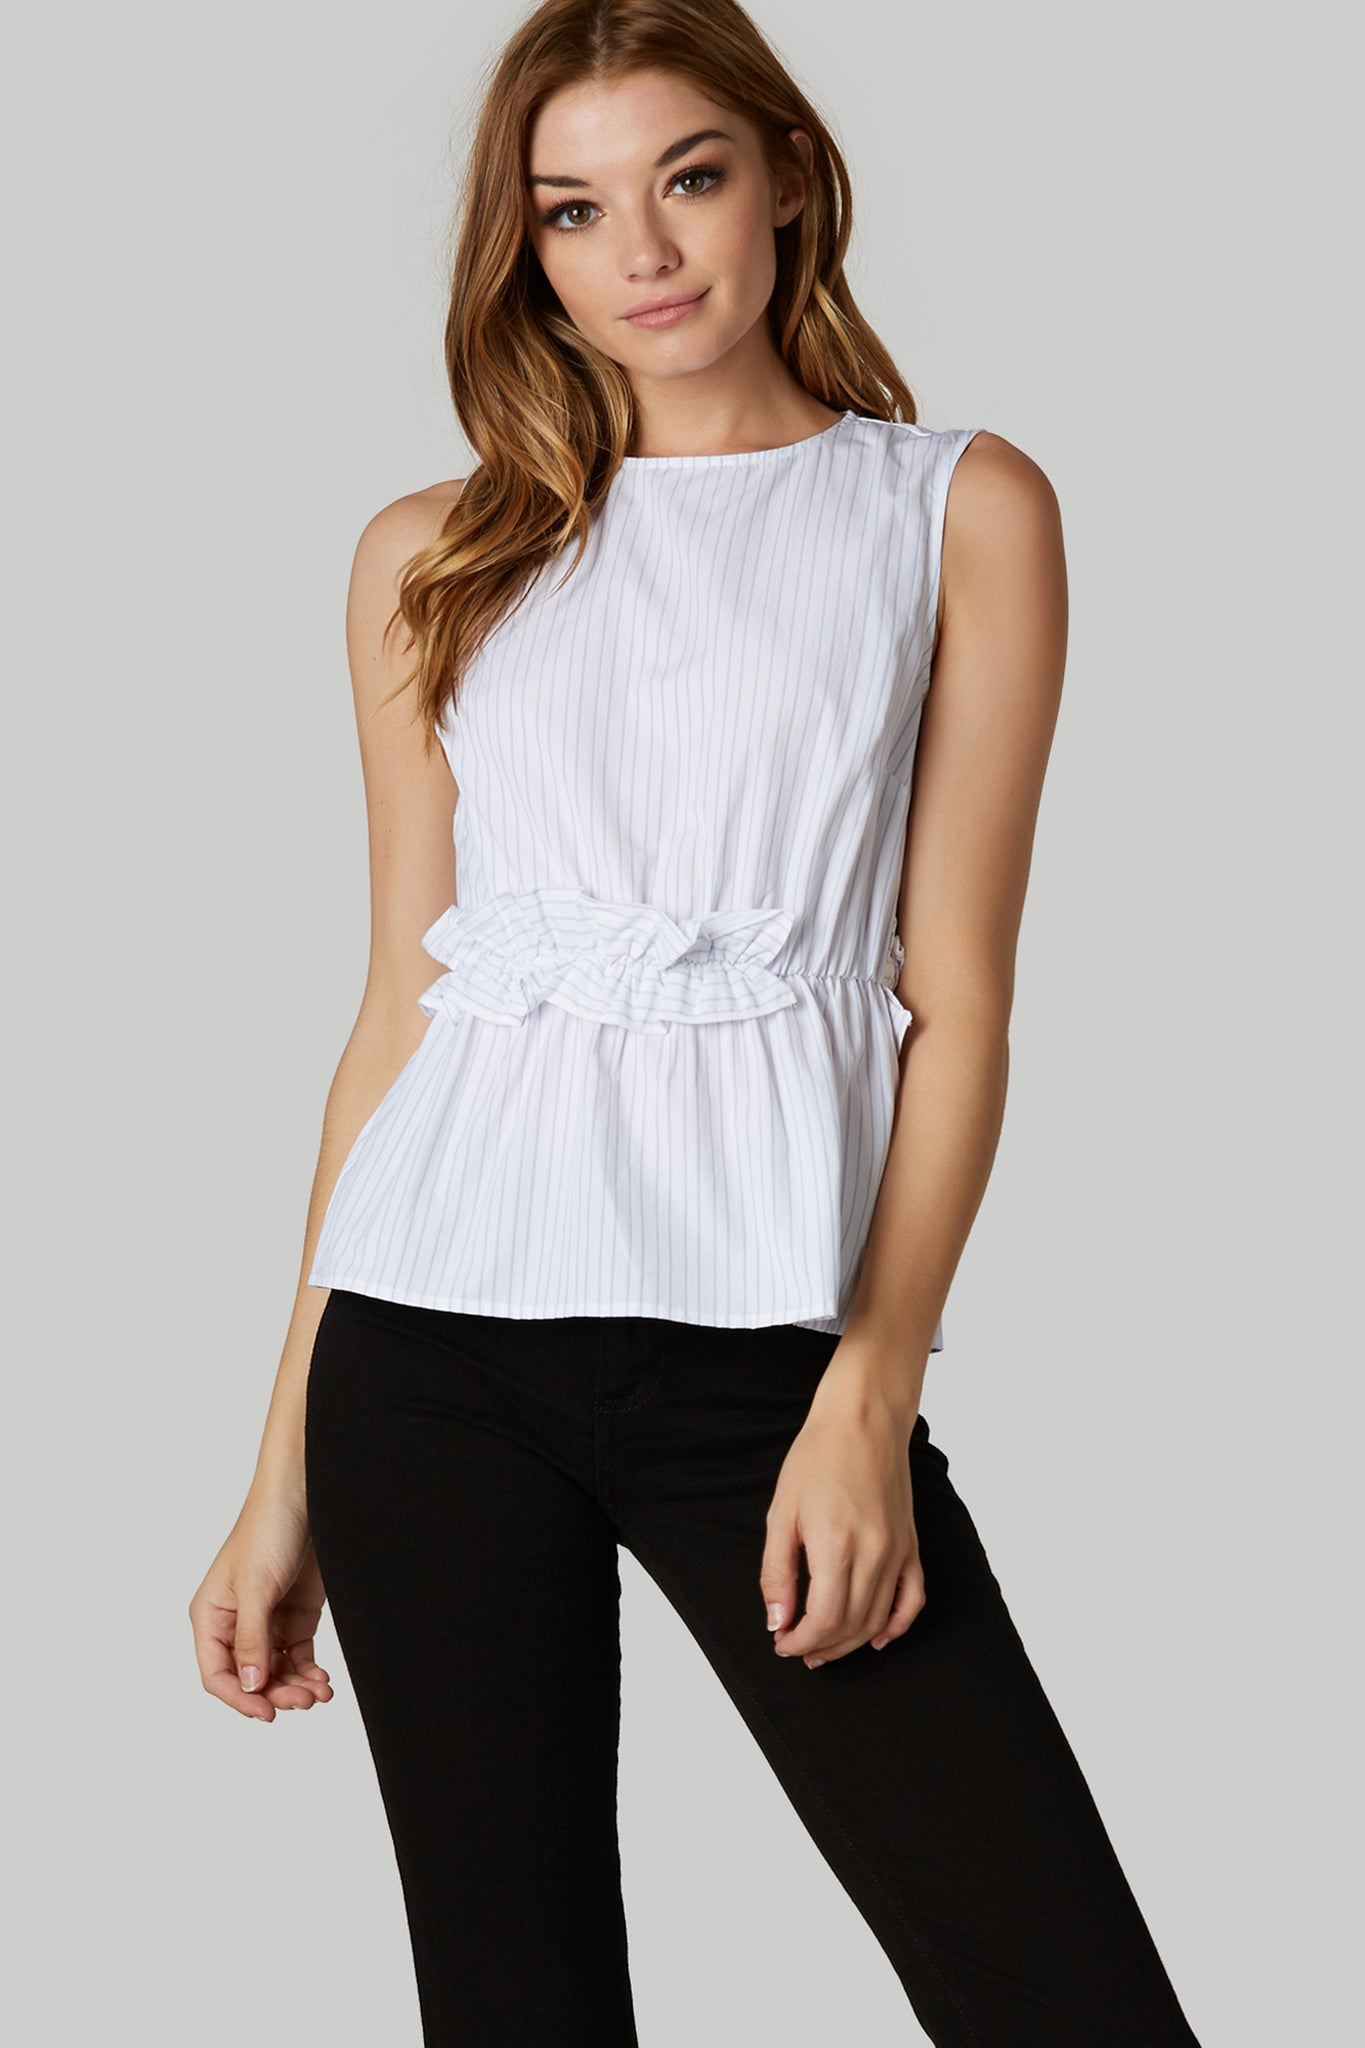 Chic sleeveless top with crew neckline and ruffle detailing. Stripe patterns throughout with button closure in back.